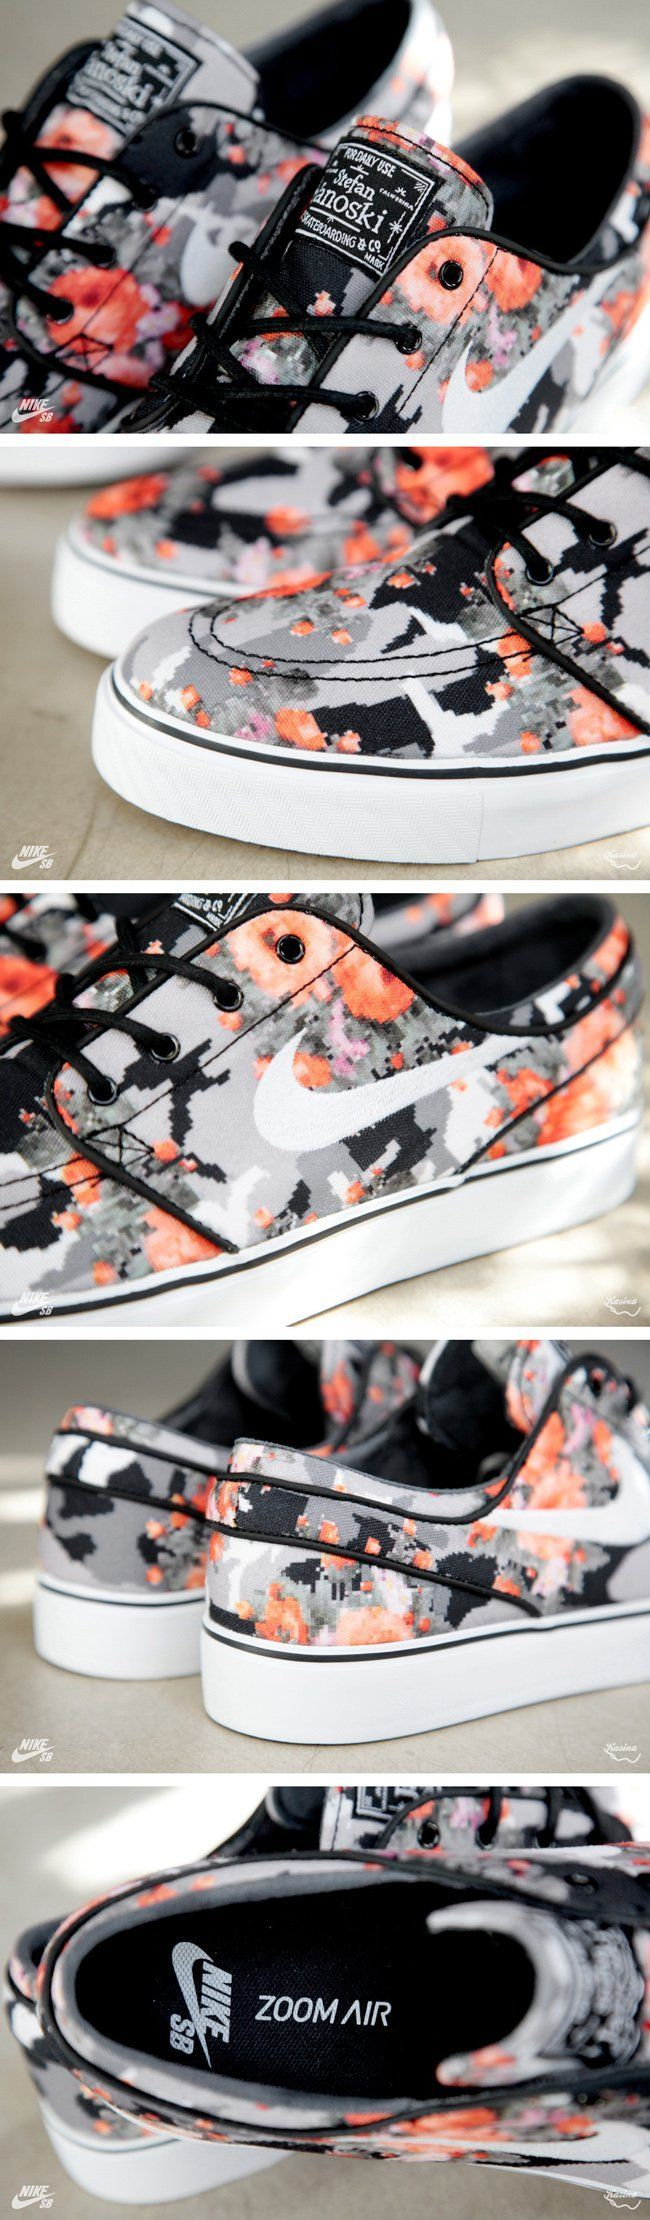 "Nike Skateboarding is now on its third take with the Janoski in a ""floral camo"" print. The third edition features..."